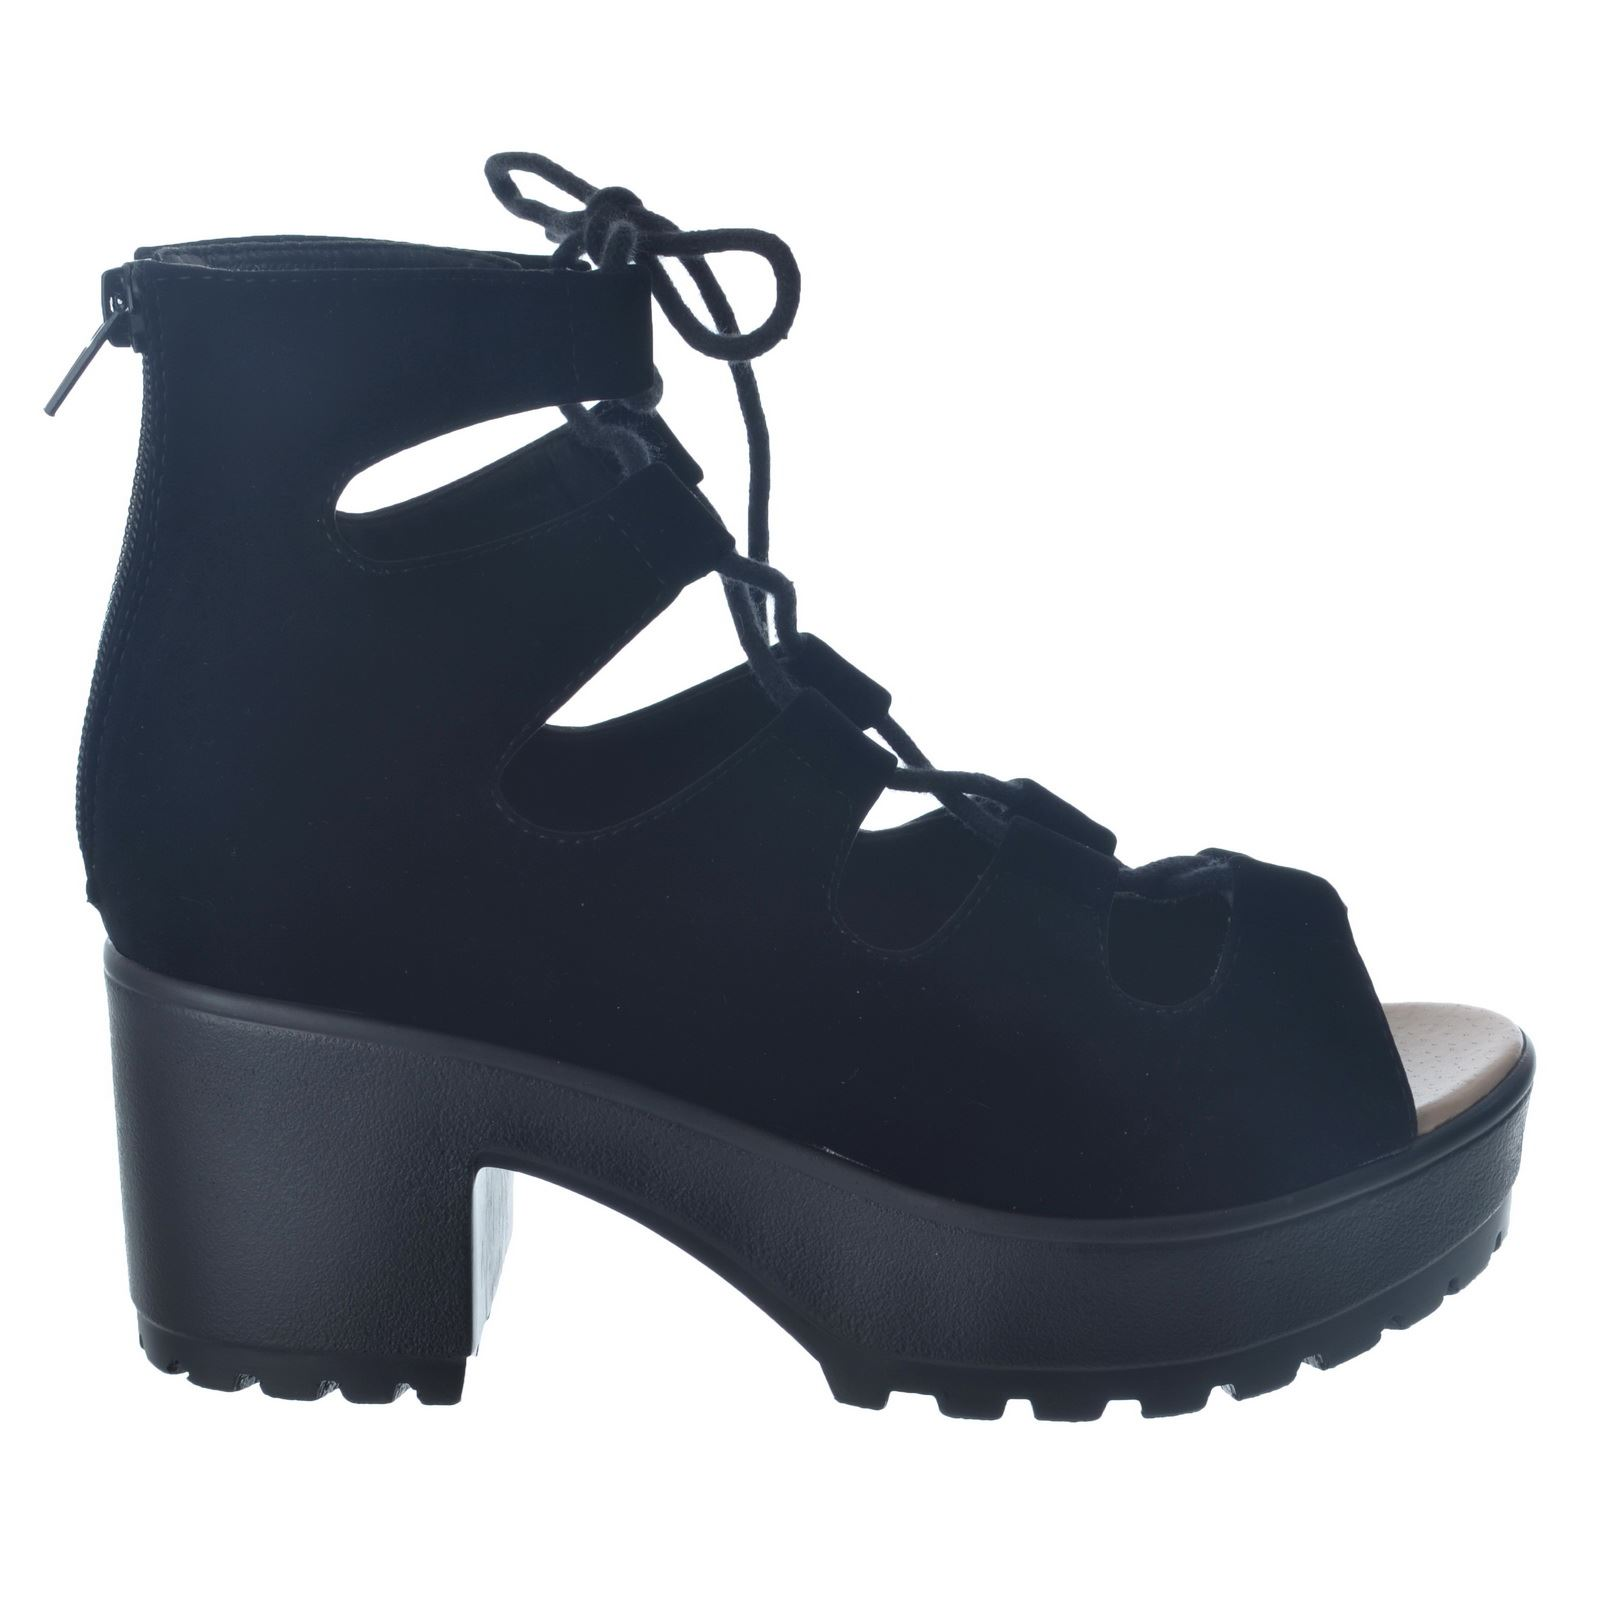 Black Chunky Cleated Sole Block Heel Sandals ($17) liked